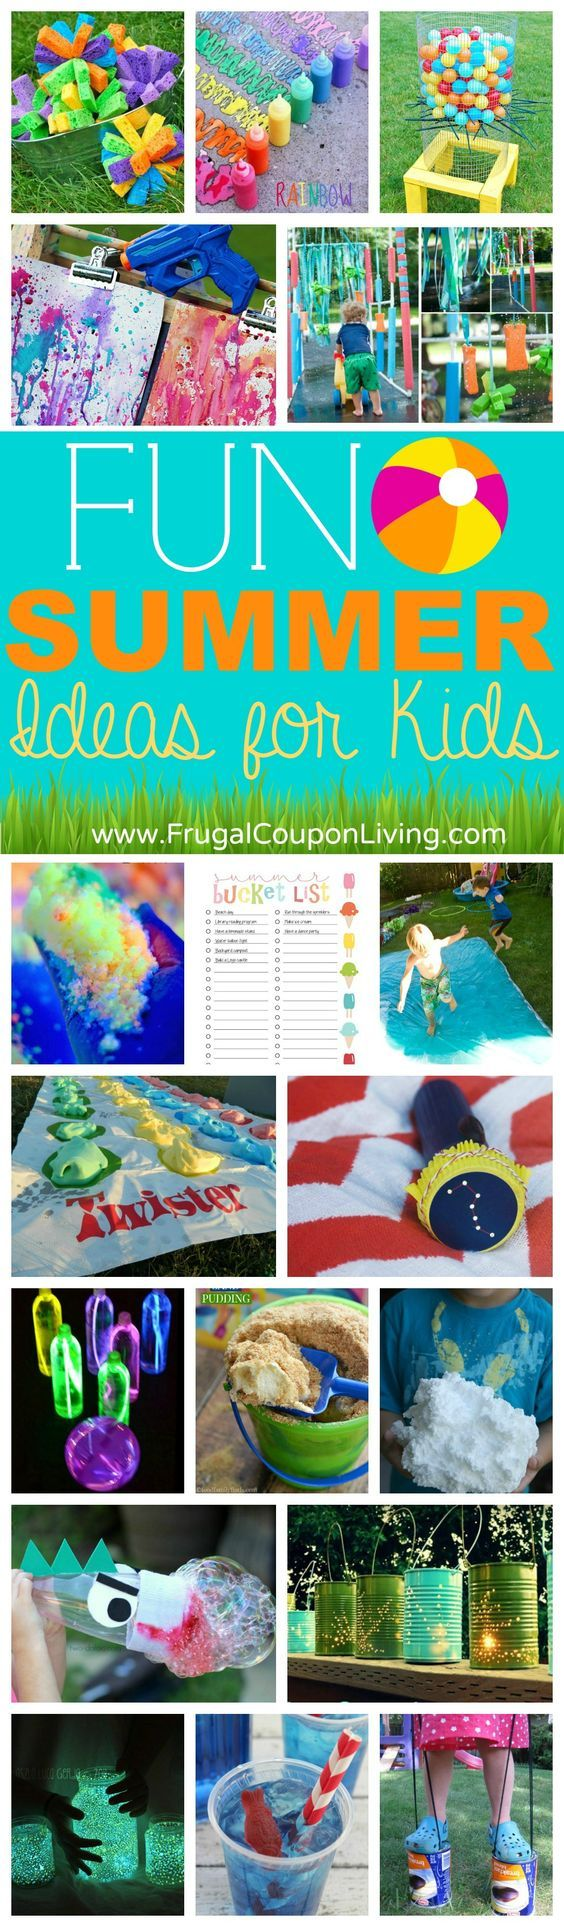 DIY Summer Fun Ideas for Kids on Frugal Coupon LIving - great summer activities for the kids and DIY summer fun ideas.